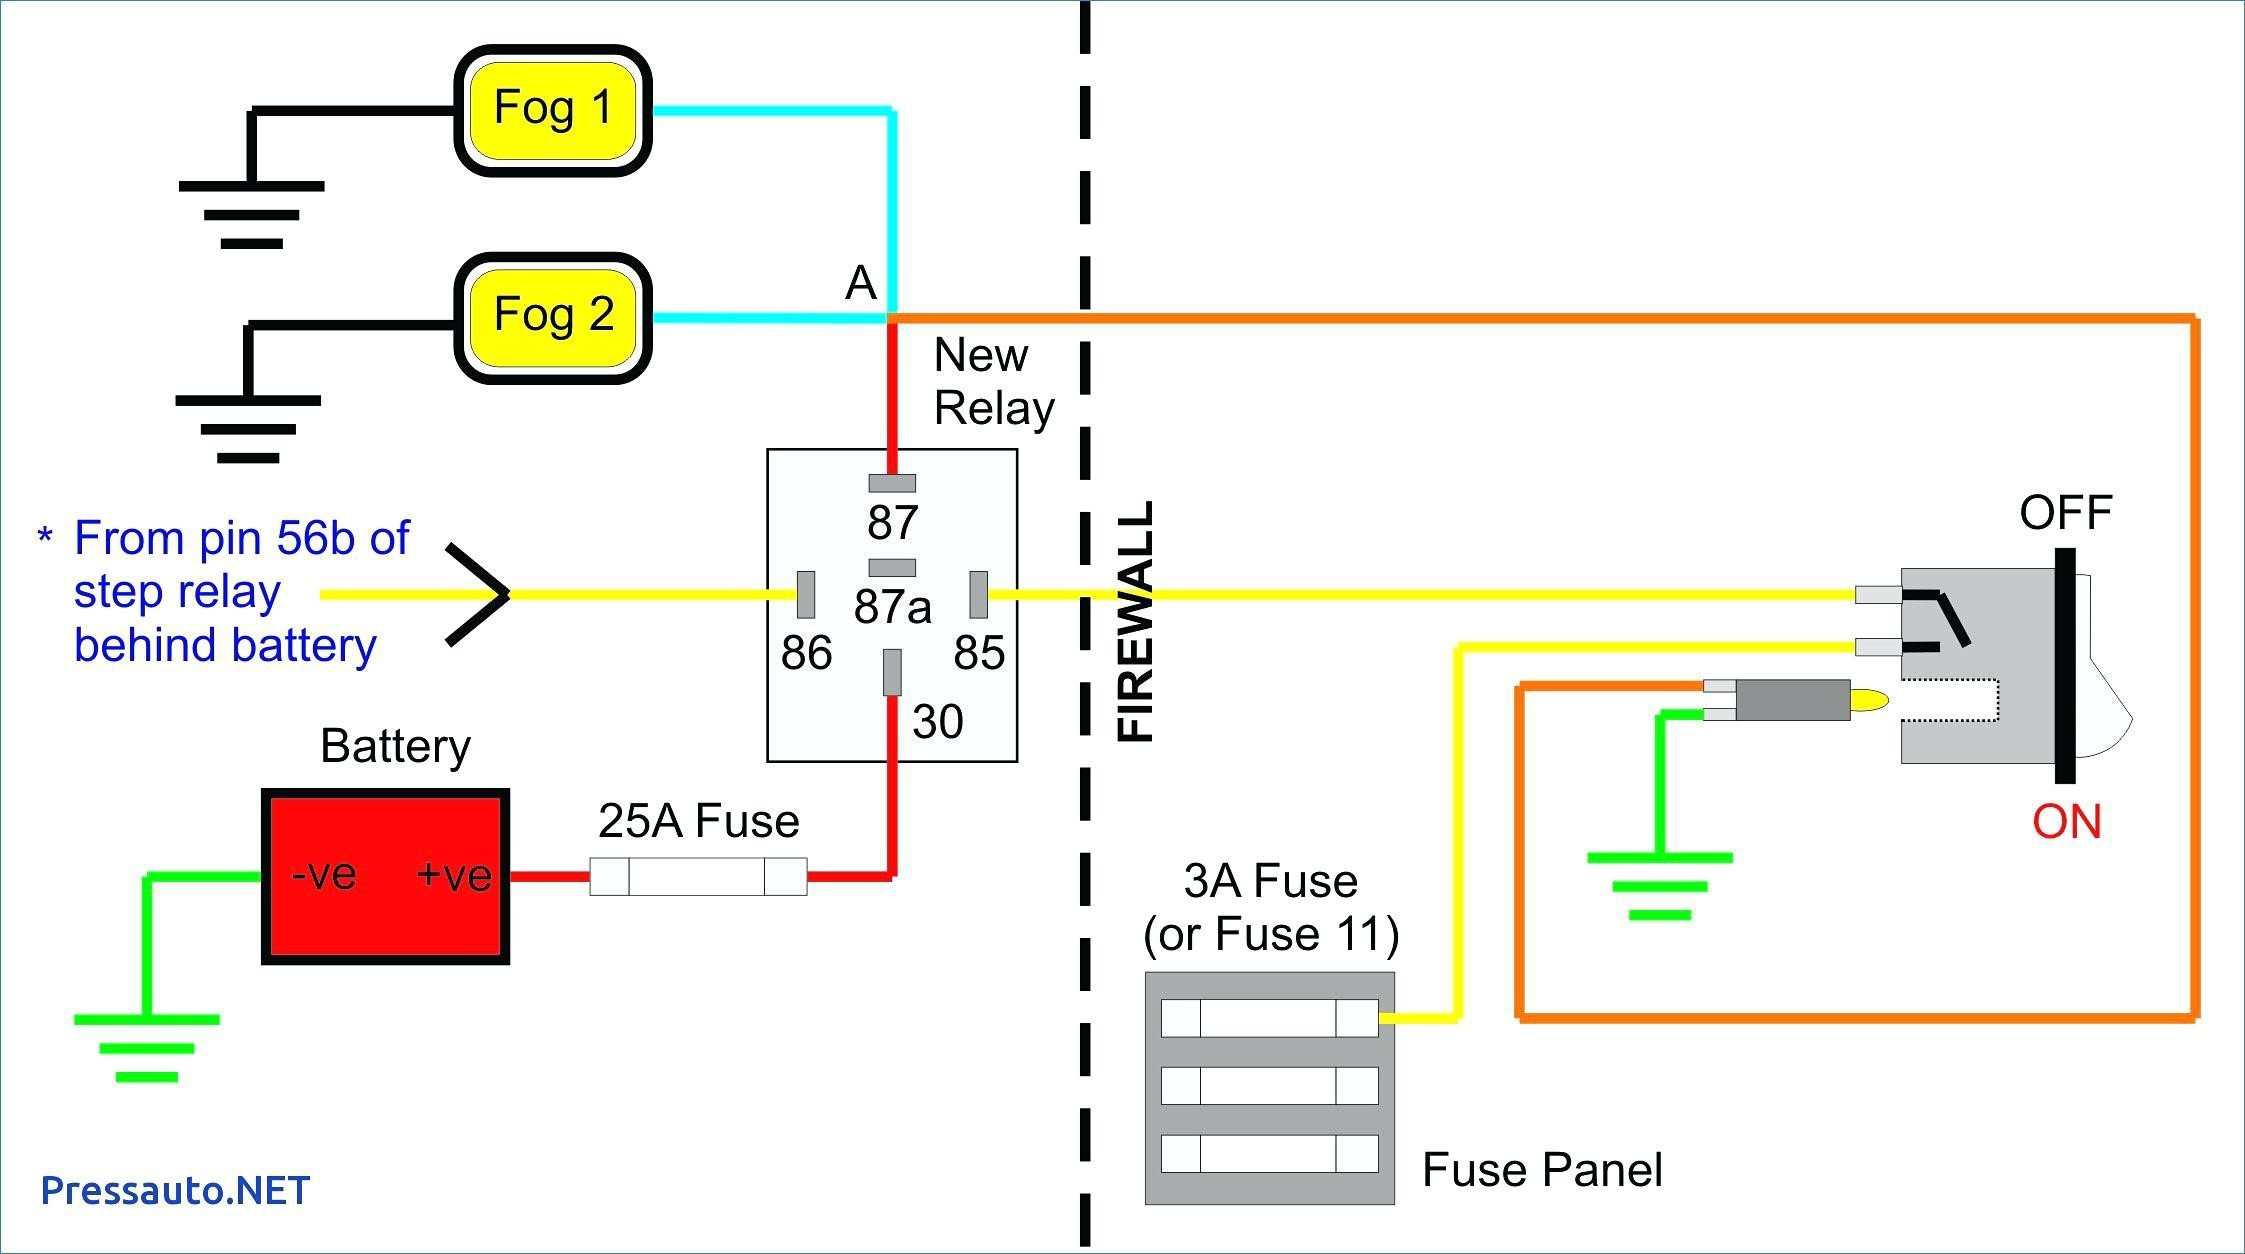 Fog Light Relay Diagram Fresh Wiring Diagram for A Relay for Fog Lights  Valid Fog Light